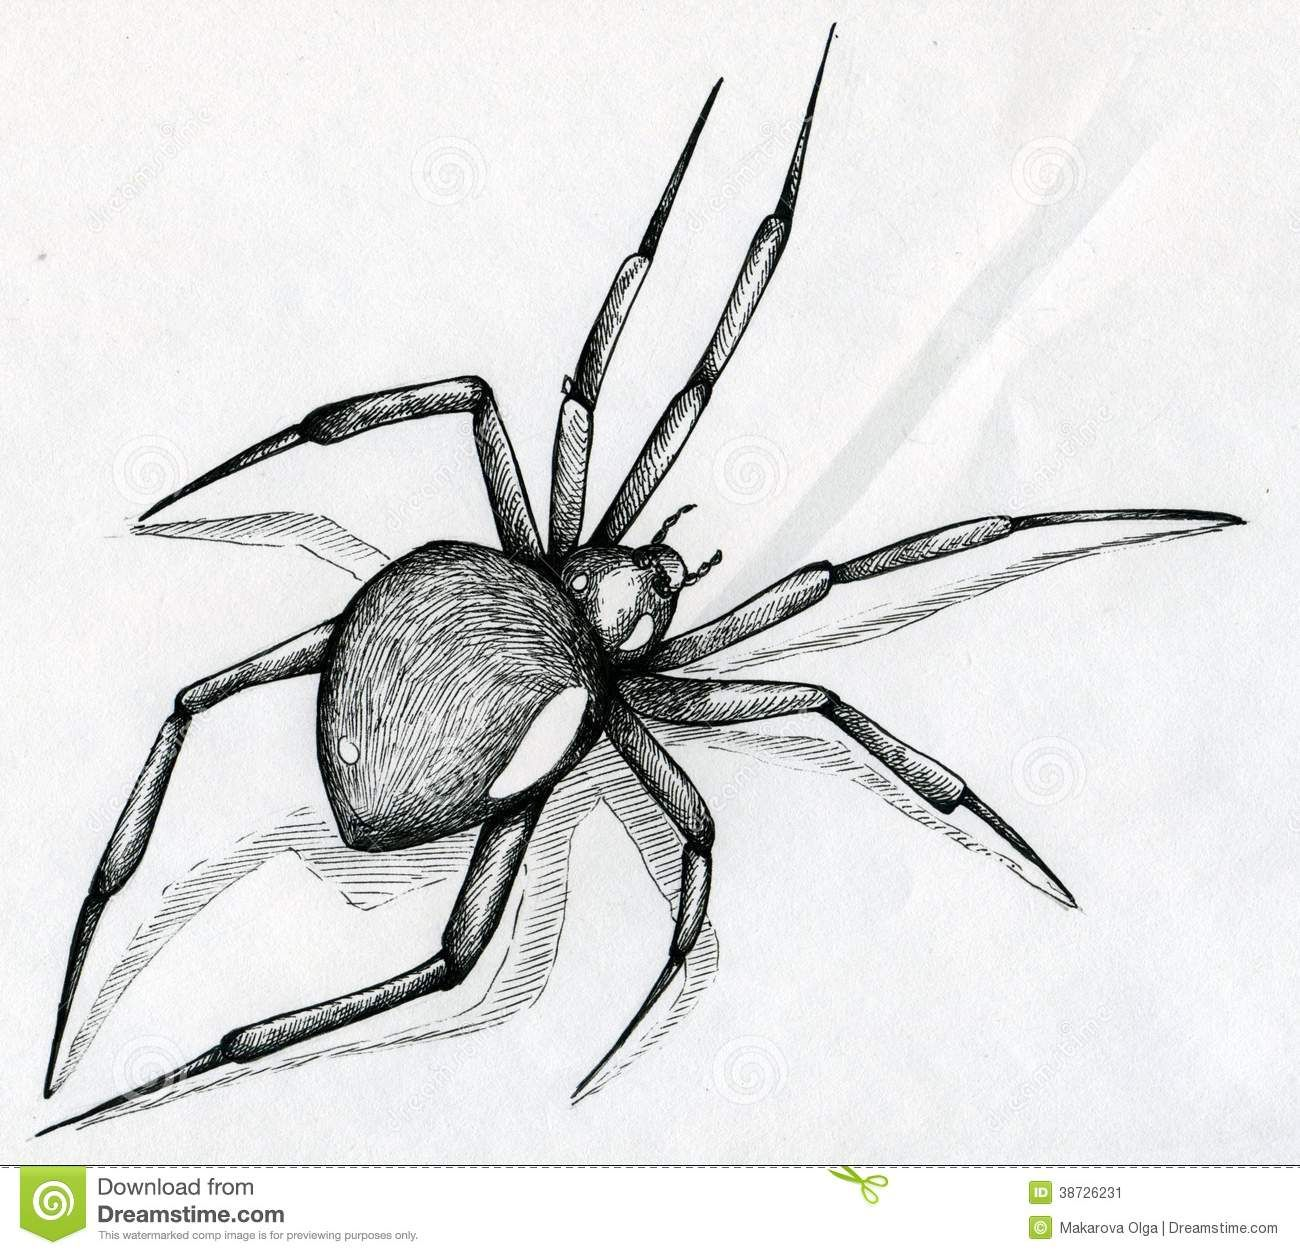 Black Widow Spider Drawing Stock Image - Image: 38726231 | 10 day ...